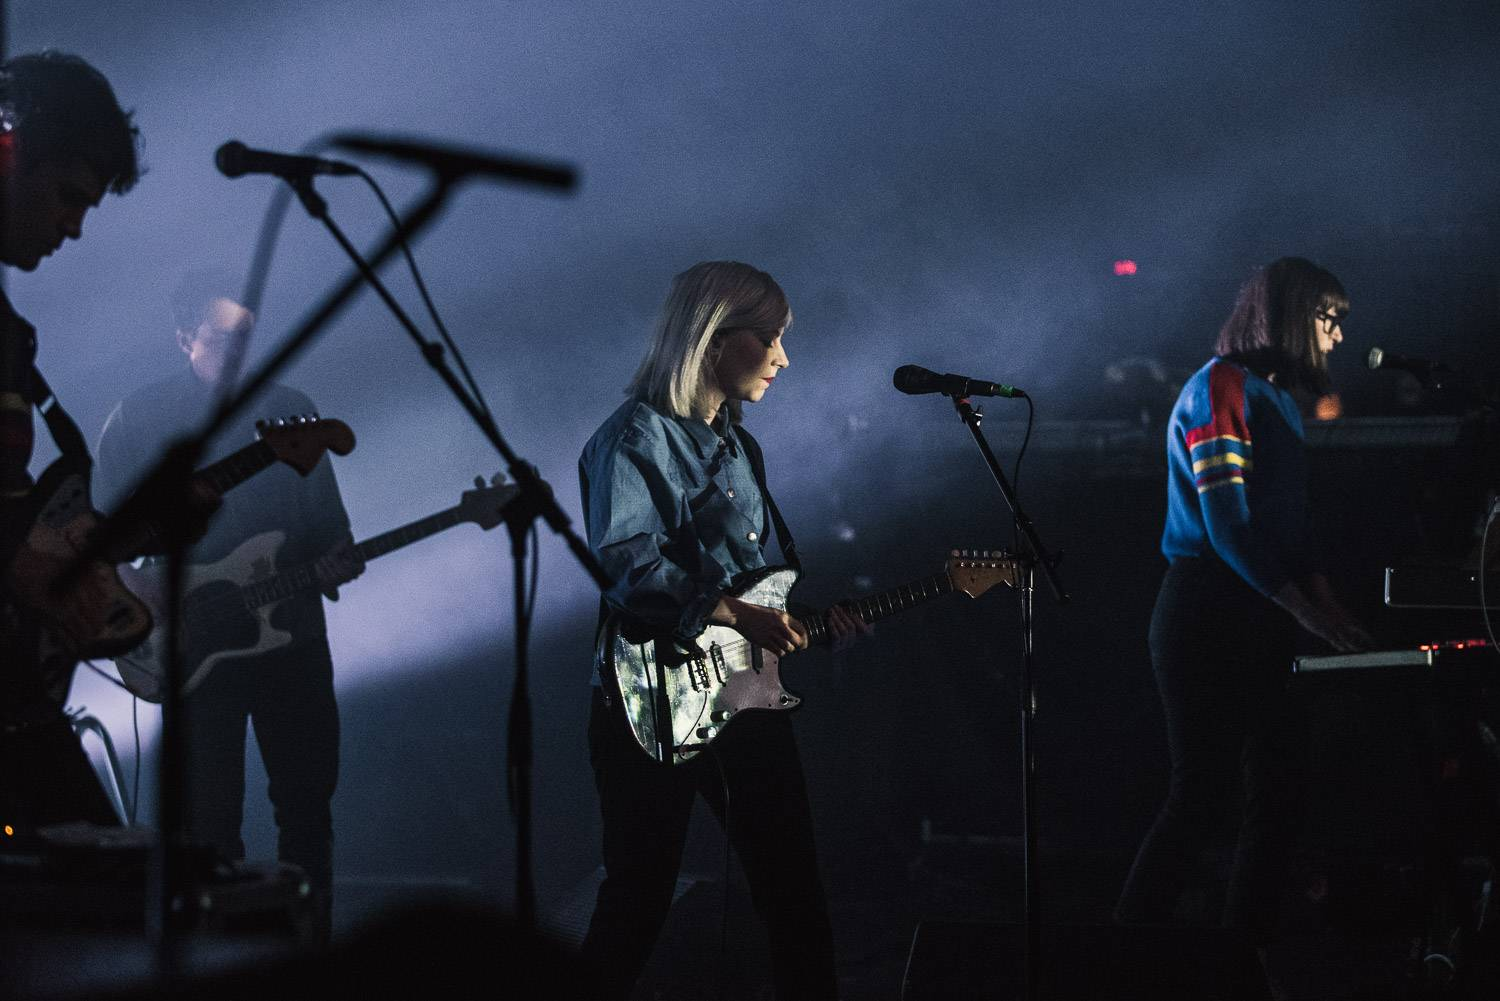 Alvvays at the Commodore Ballroom, Vancouver, 2018 April 4. Pavel Boiko photo.